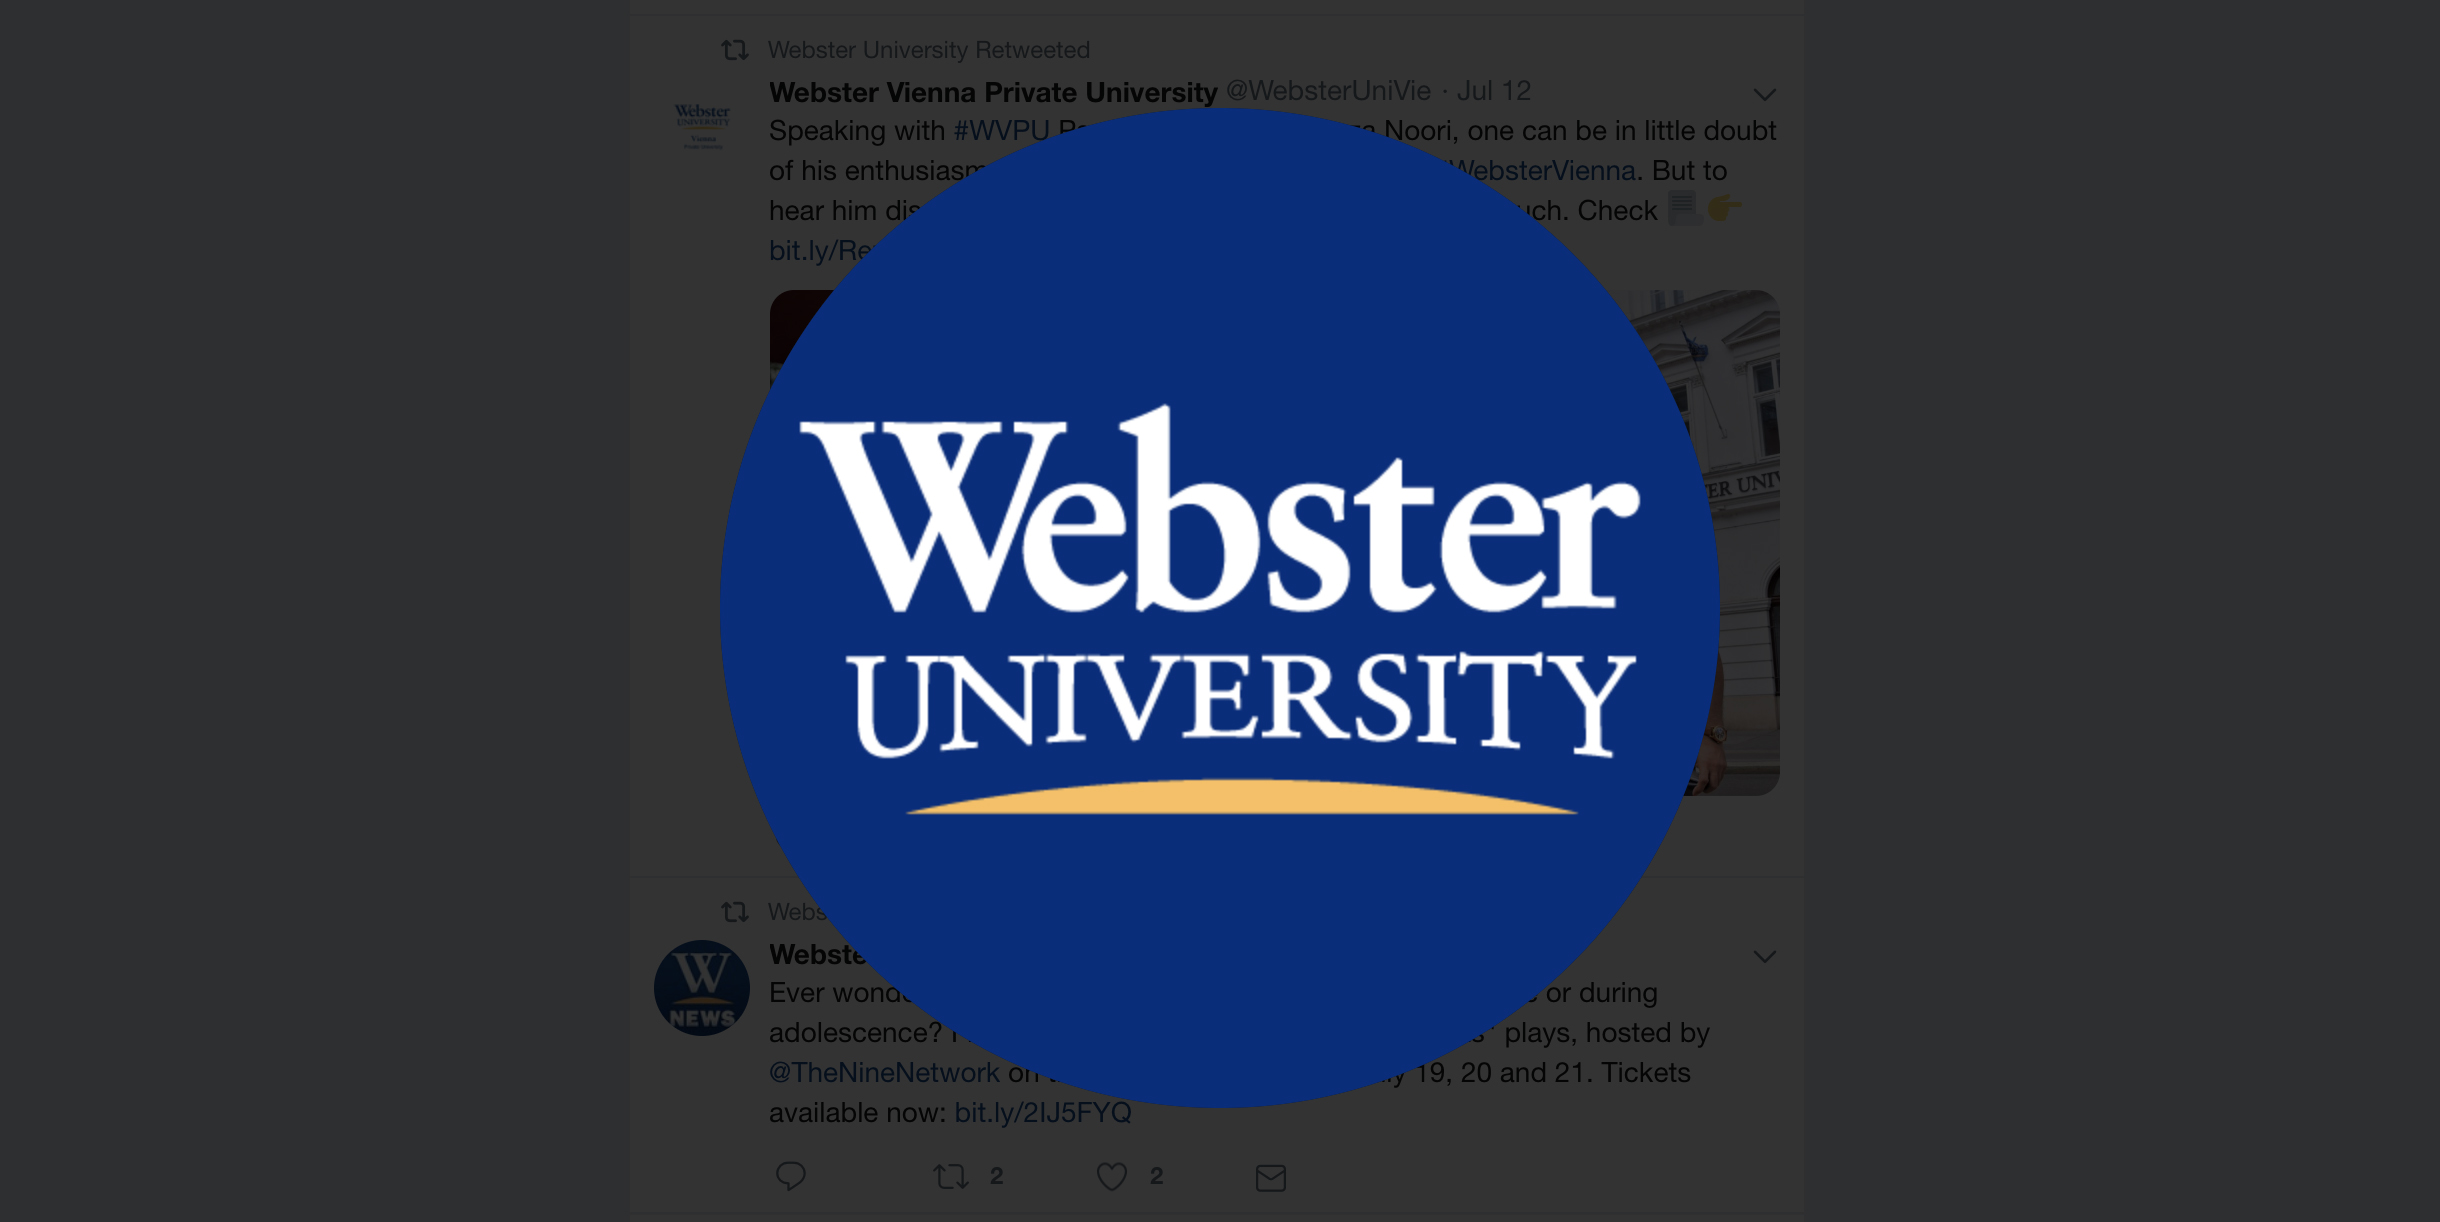 New Partnership with Webster University